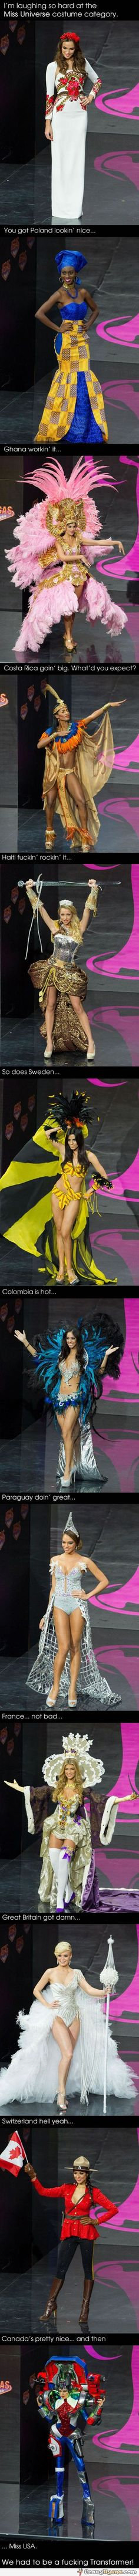 'Murica at the Miss Universe pageant...